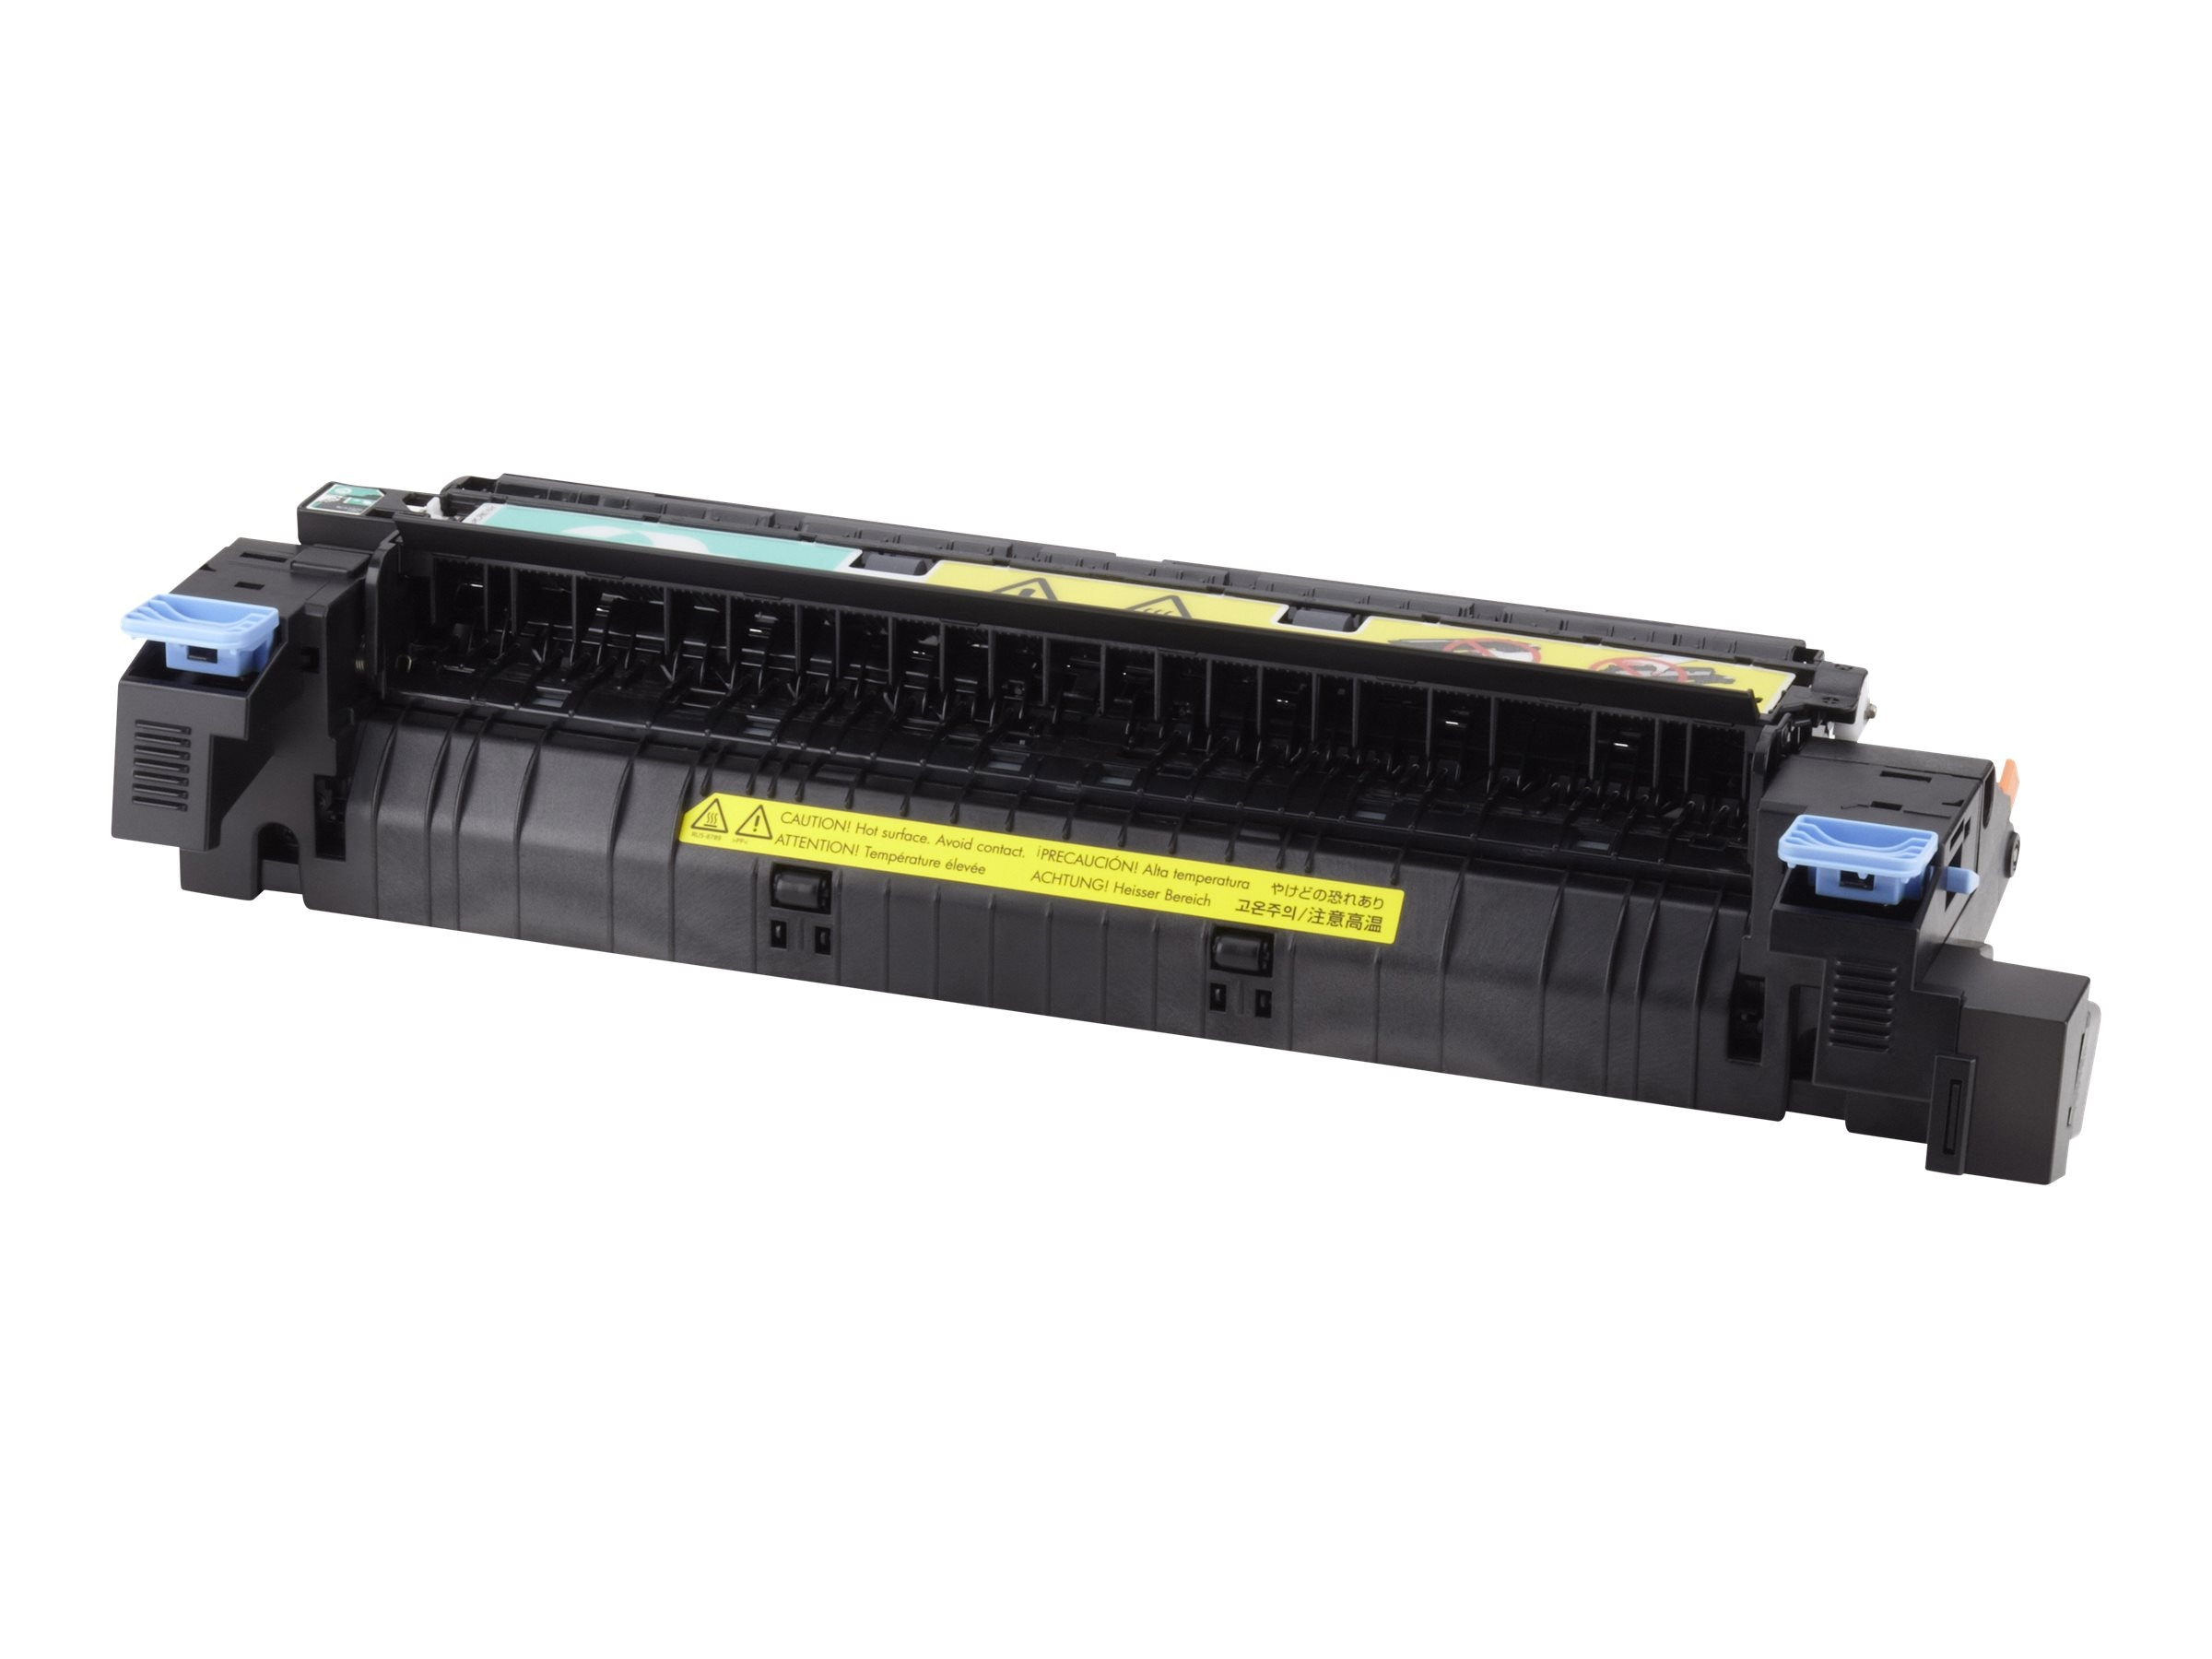 HP 110V Fuser Maintenance Kit